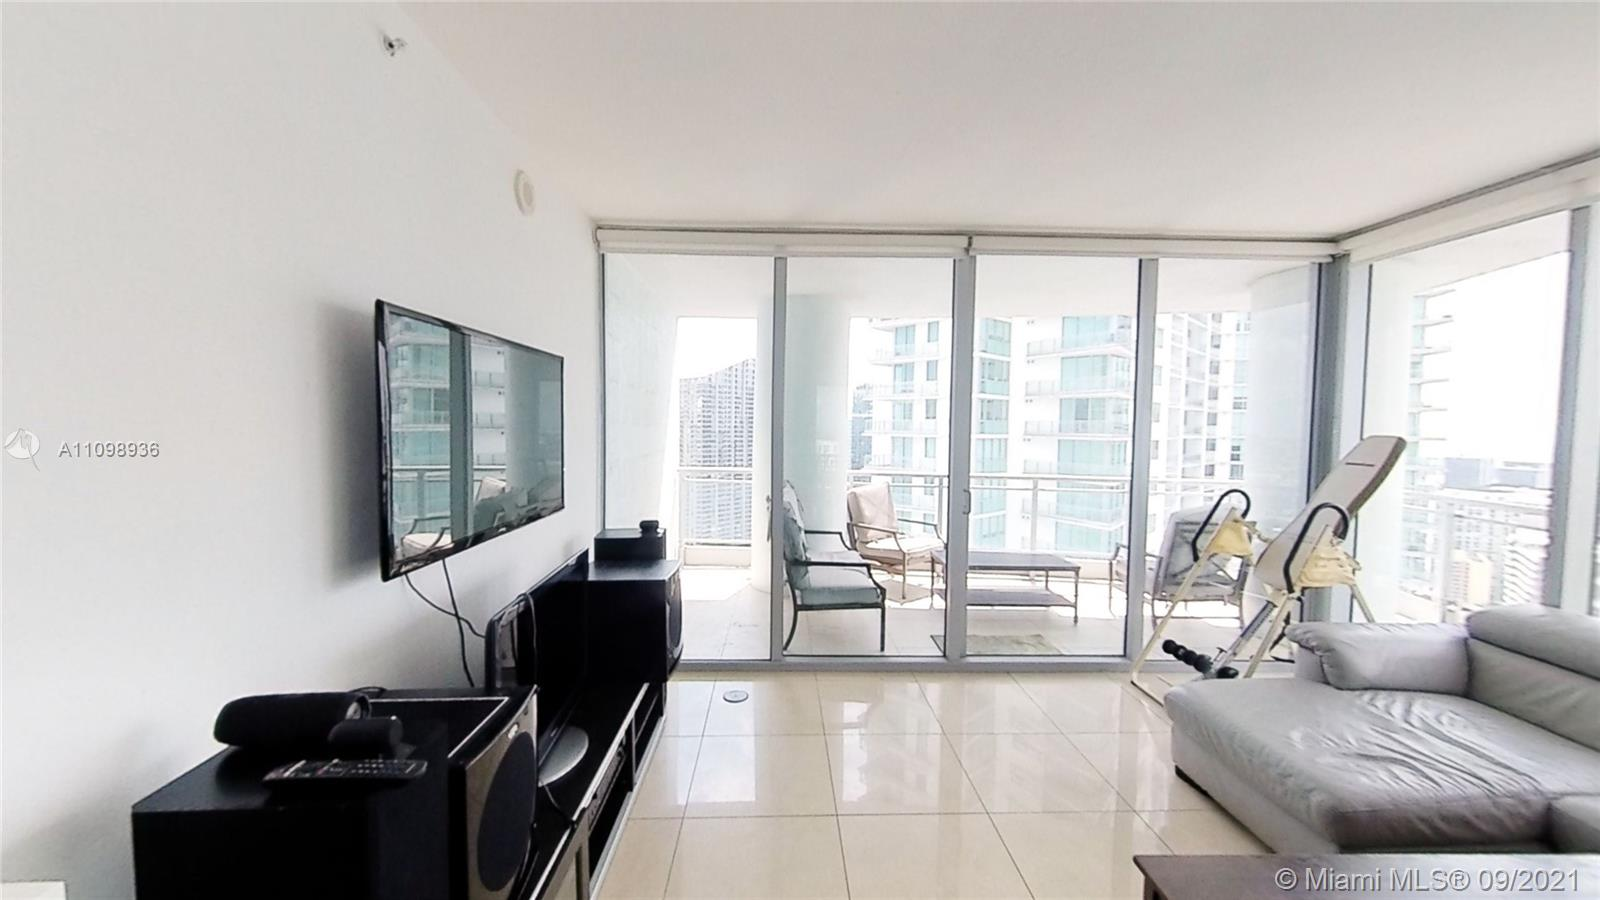 Apartment in The Ivy Condo, with 3 Beds / 3 Baths, with amazing view, incluided stainless steel appliances kitchen, refrigerator, diswasher, microwave, washer & dryer.  The building has greats amenities pools, gym, spa, lobby and more. Tenant is paying $3,575/Month and tenant has been there for 4 years already. Tenant occupied until January 9th, 2022